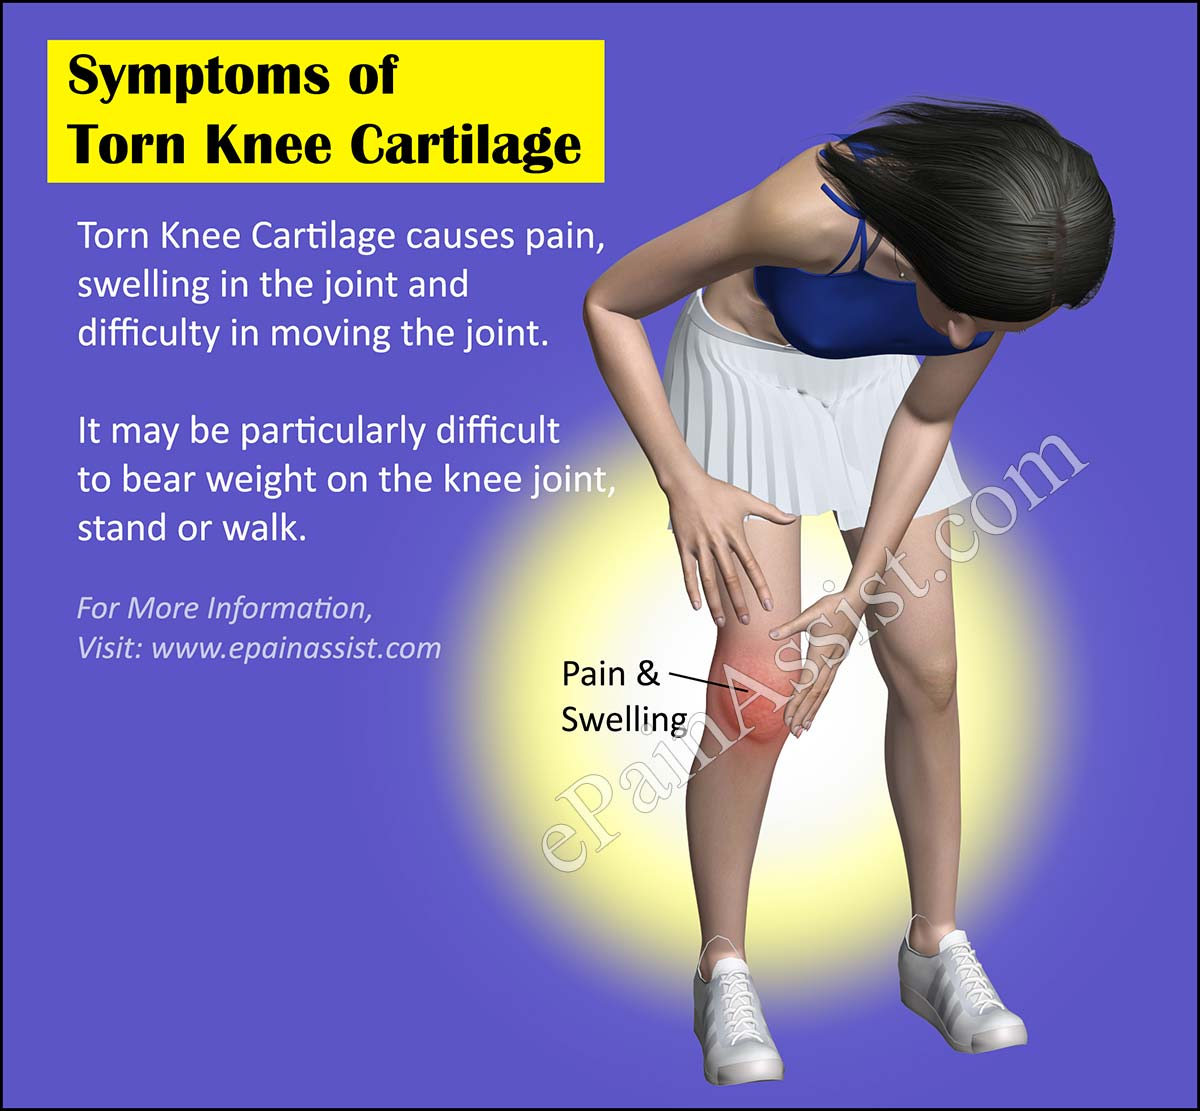 Symptoms of Torn Knee Cartilage